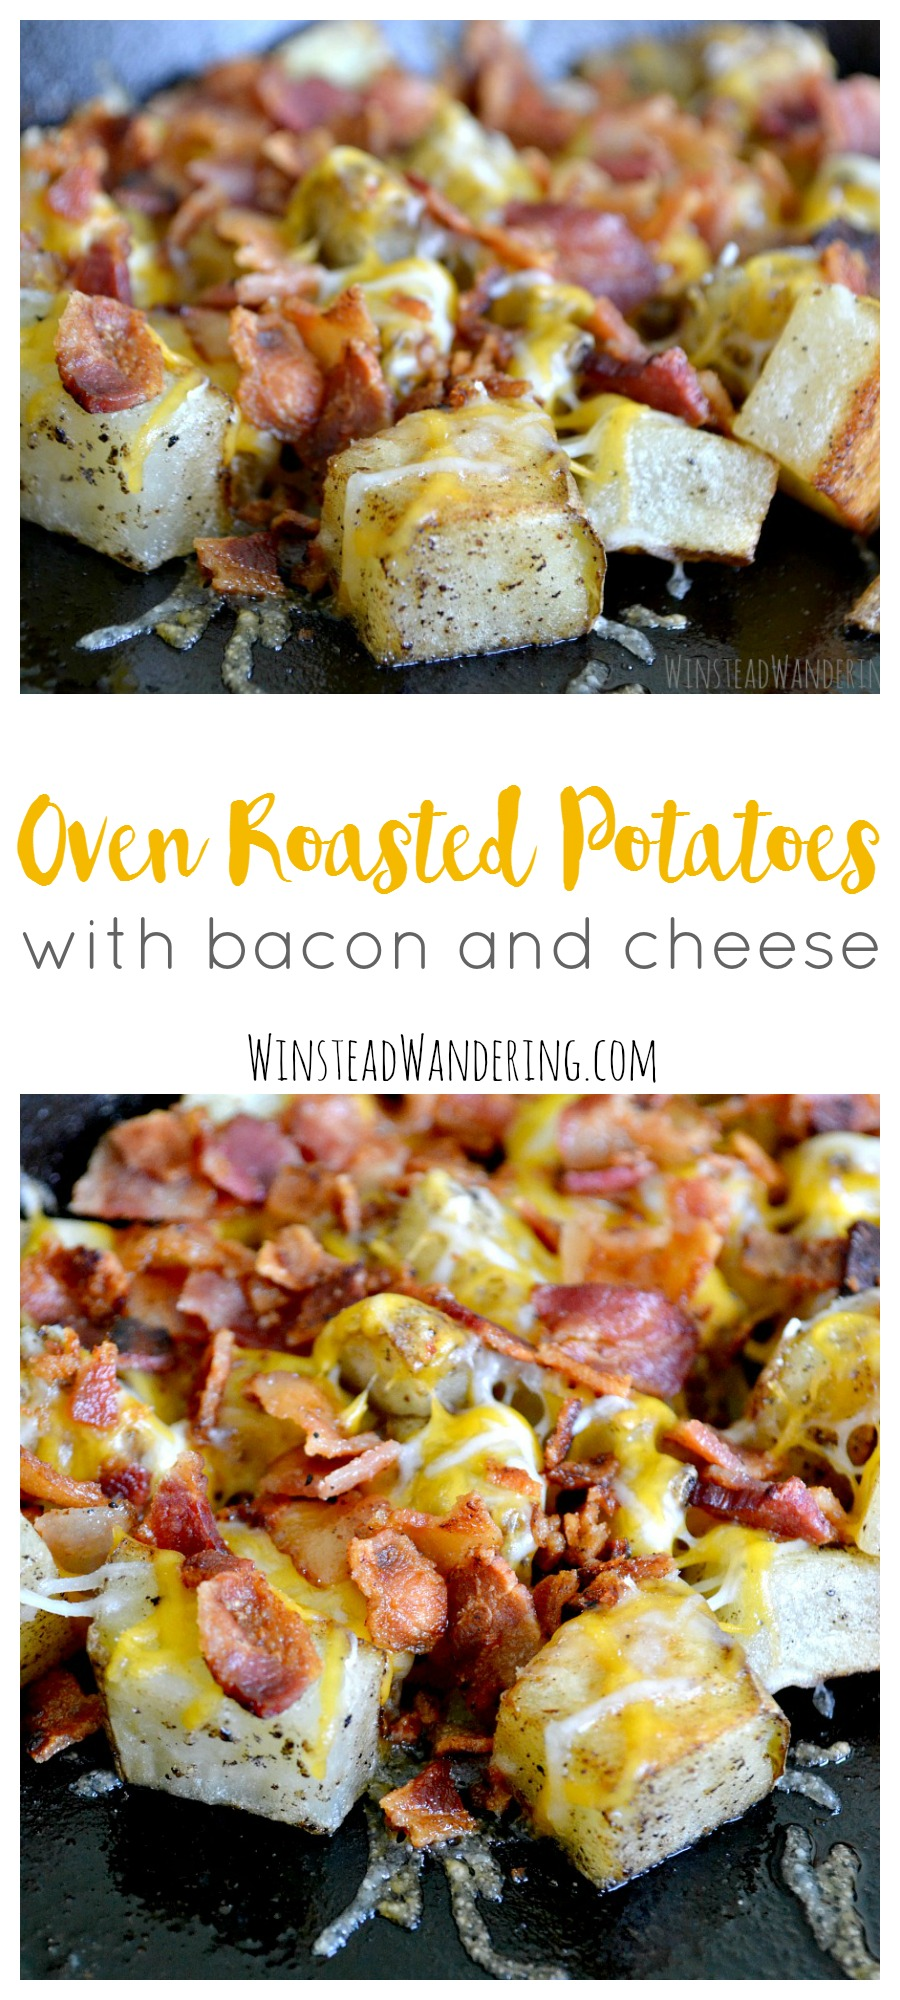 Oven roasted potatoes with bacon and cheese are the perfect quick, easy, and delightfully delicious side dish for any time of day.